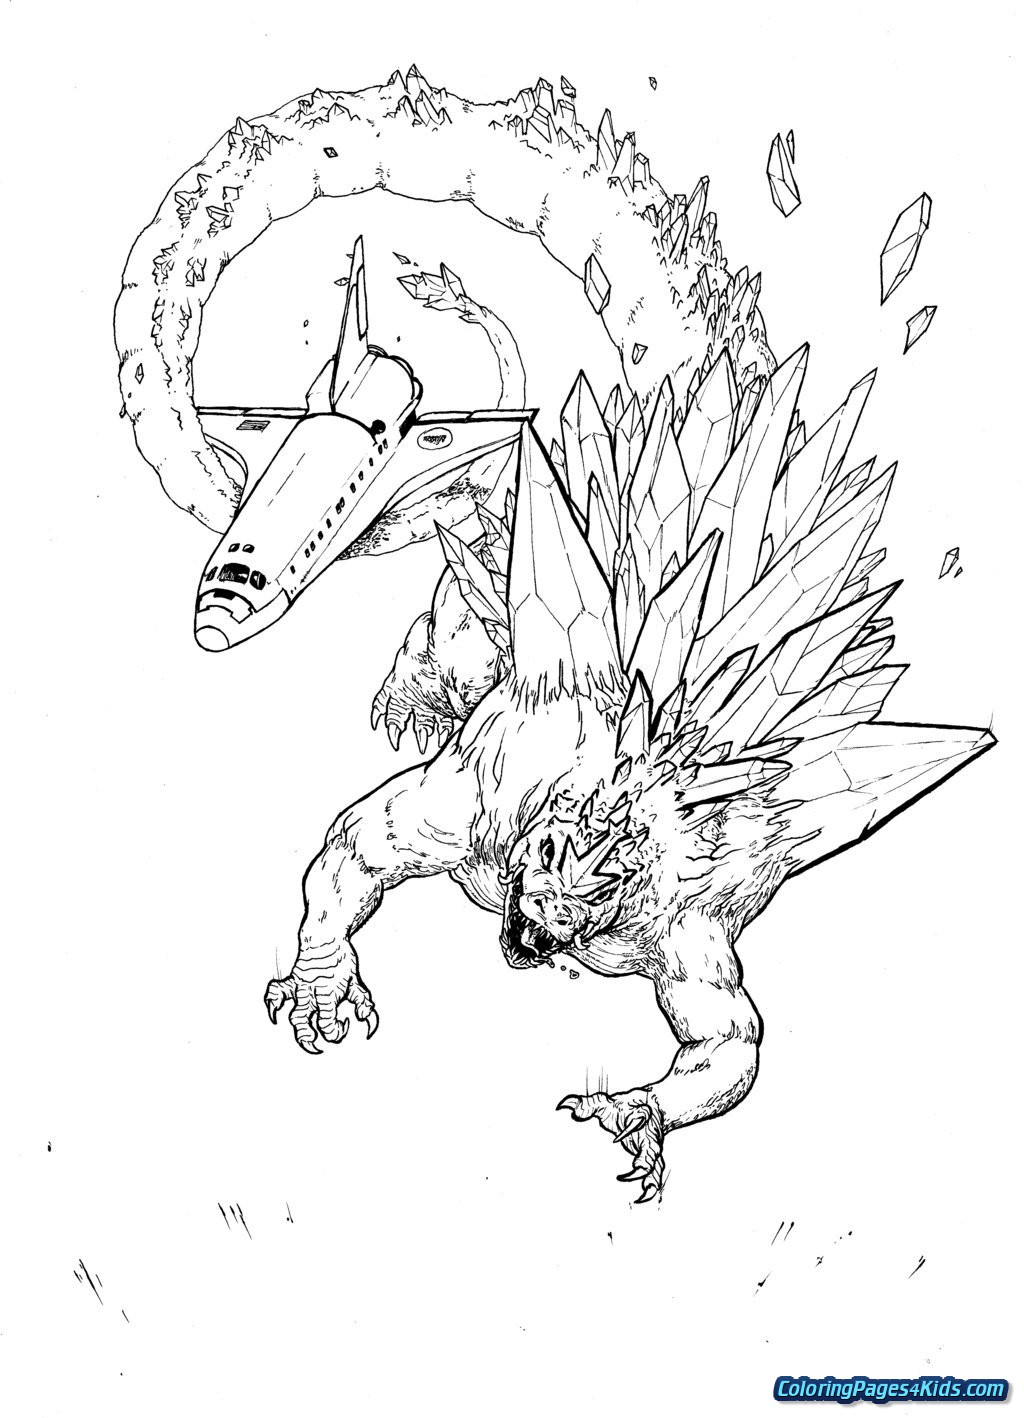 Godzilla Coloring Pages King Kong Vs Godzilla Coloring Pages Free Printable Coloring Pages